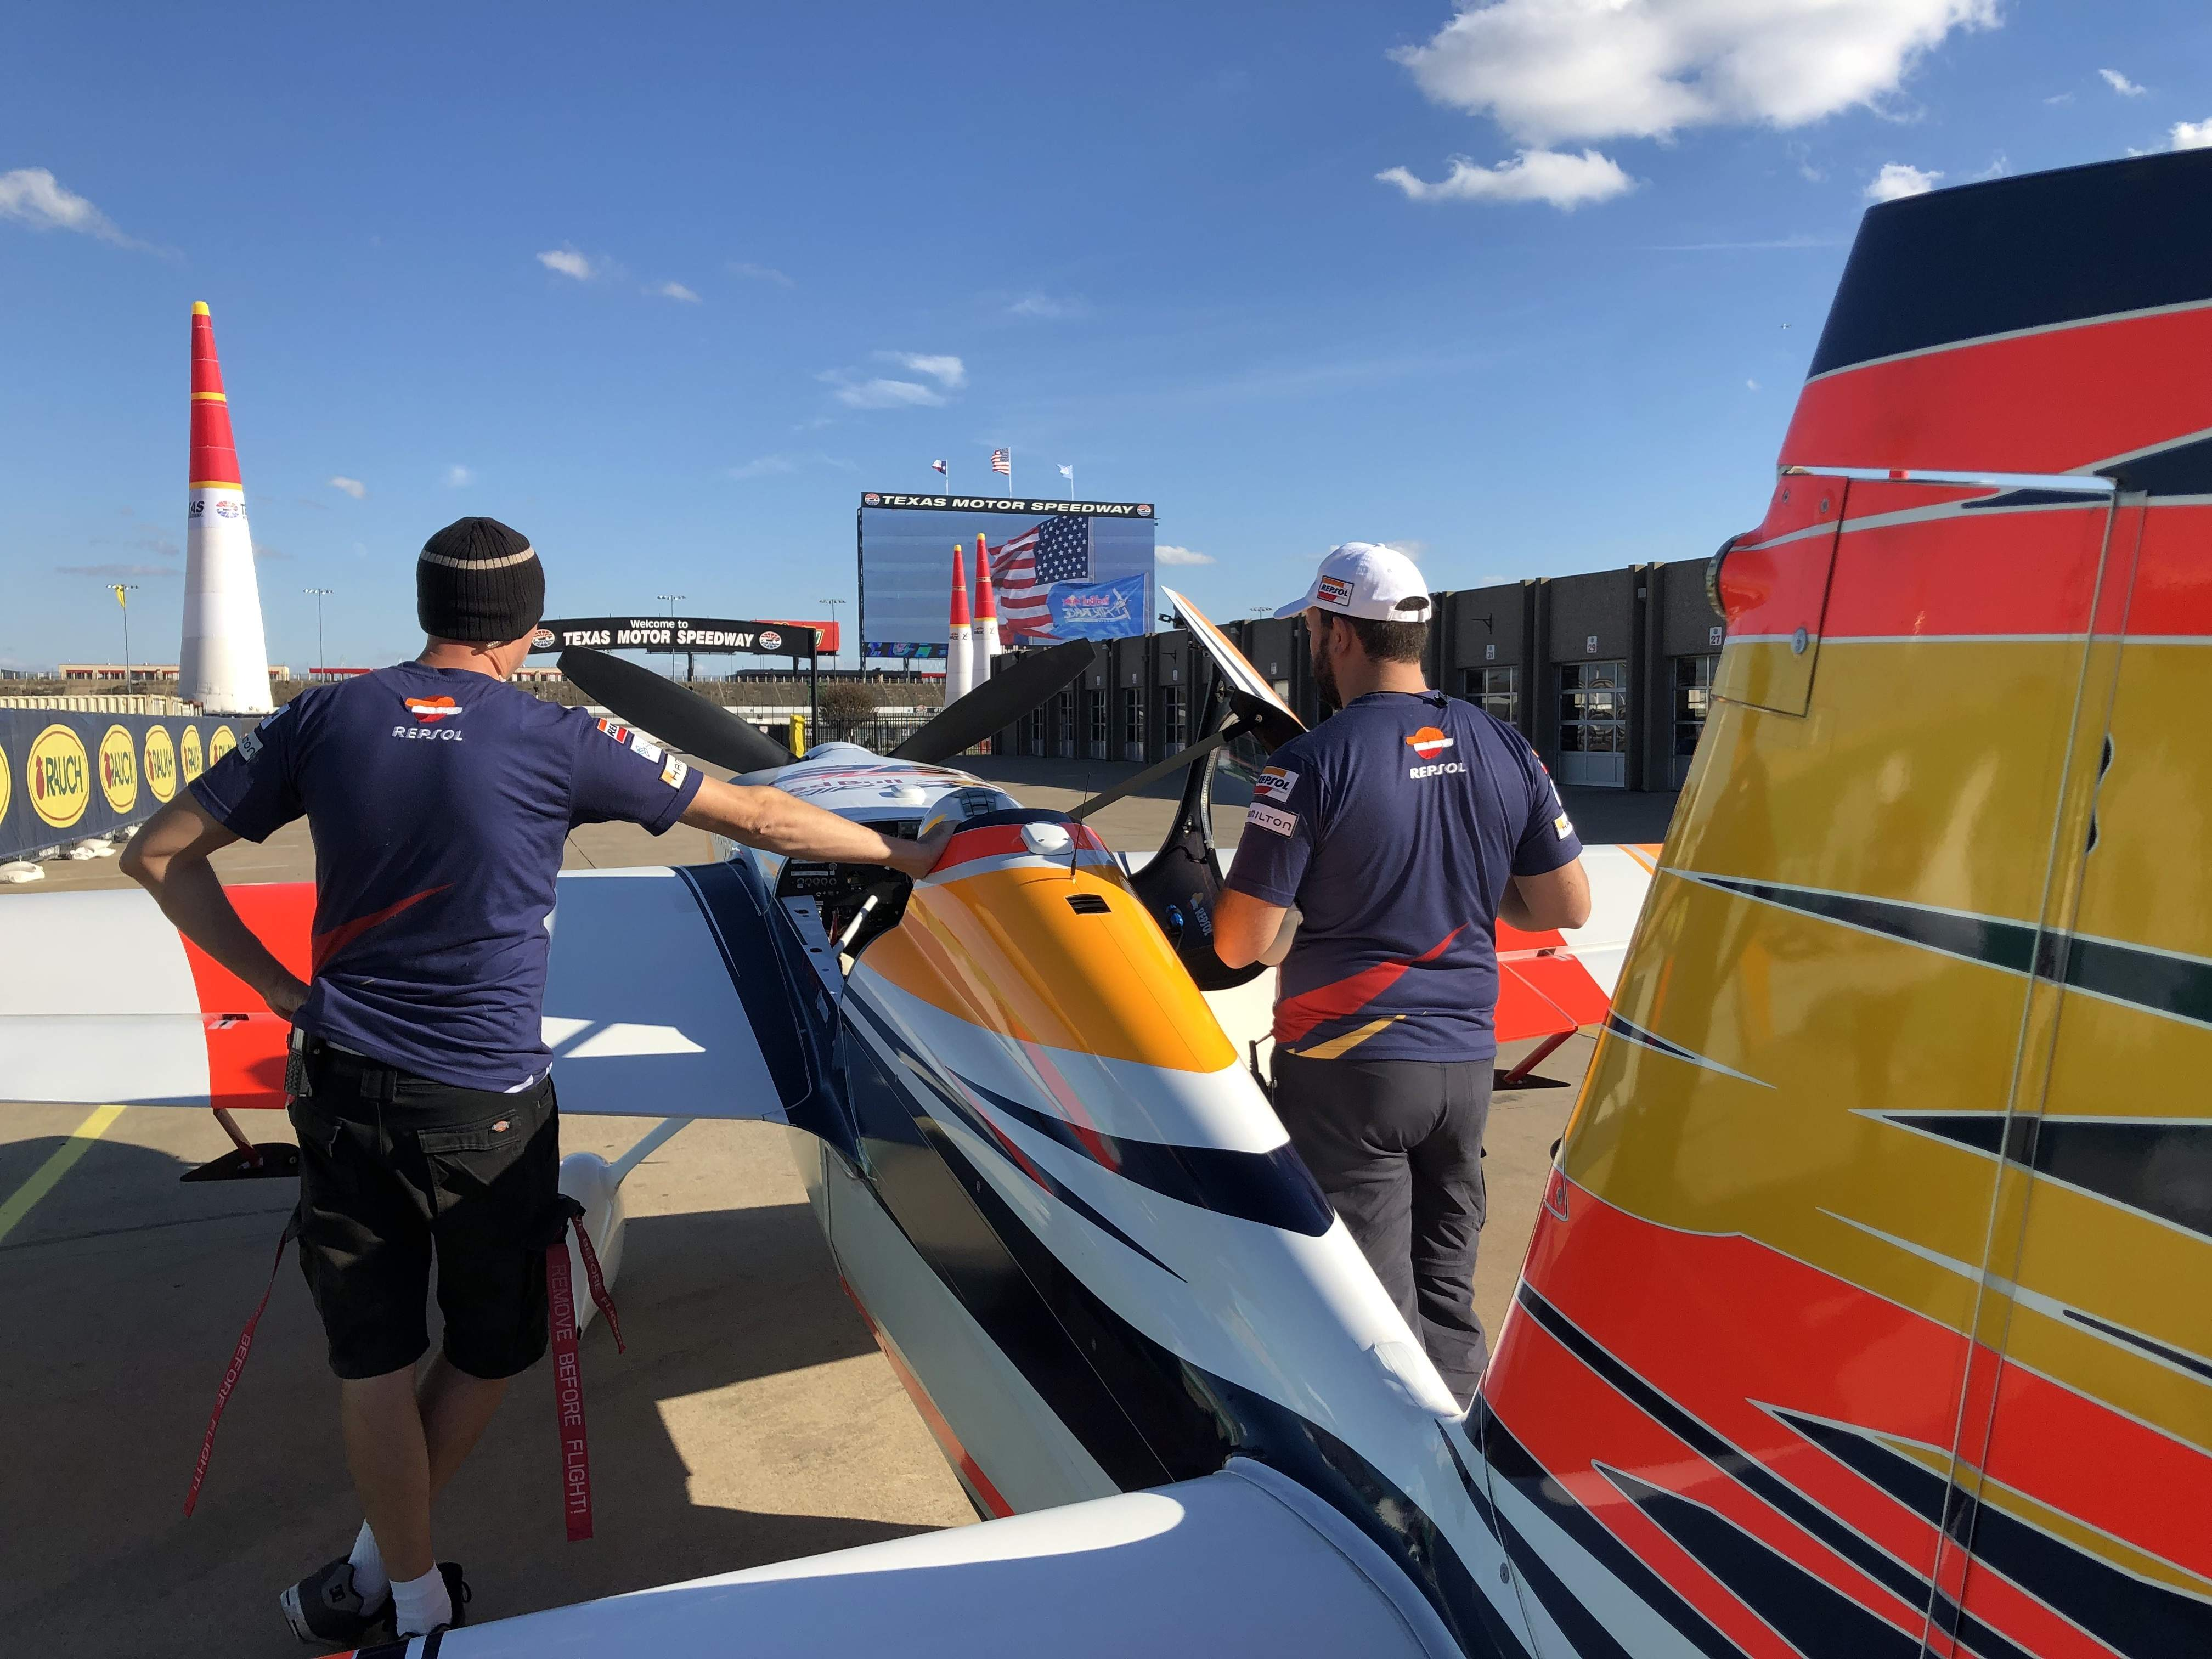 Airrace USA